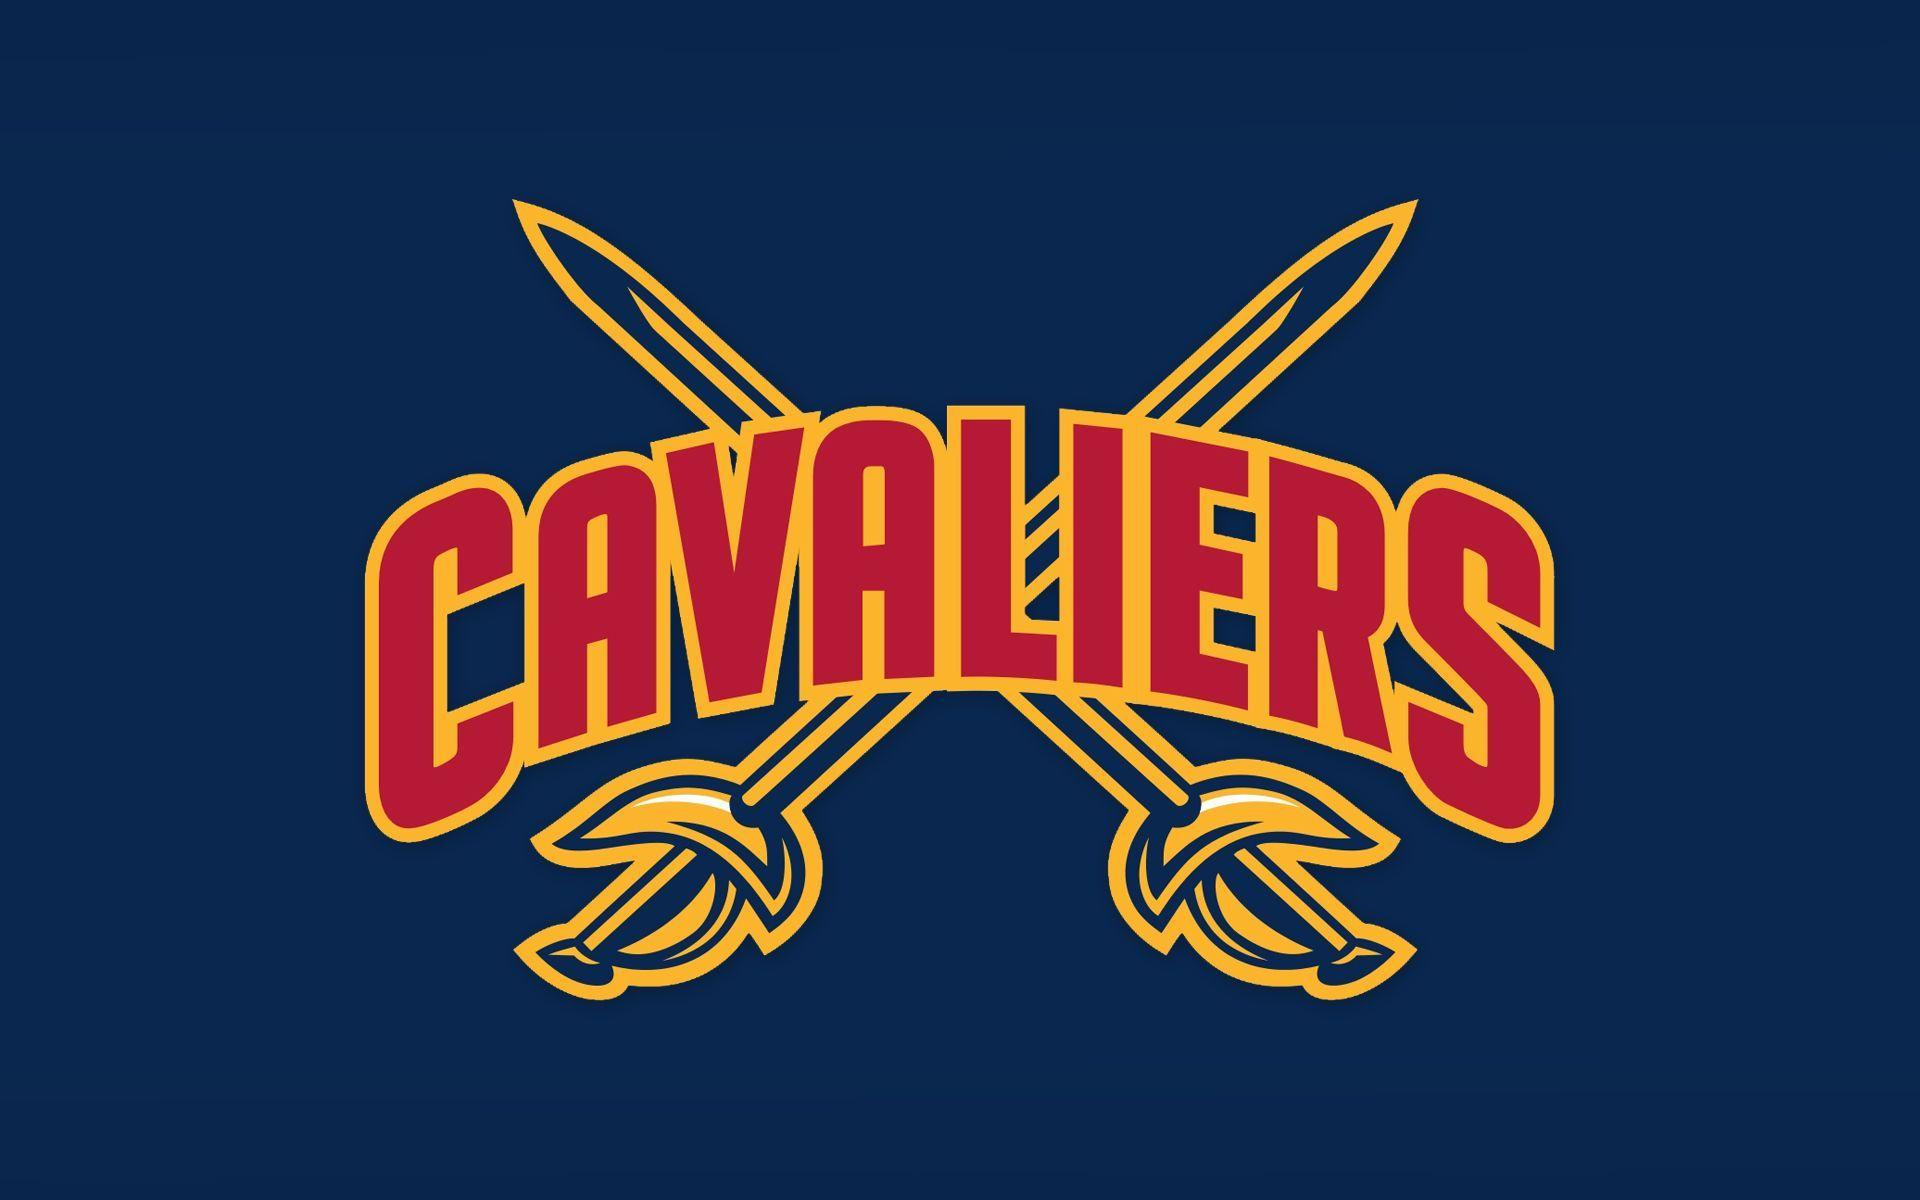 Cleveland Cavaliers | Sports | Cavaliers wallpaper, Basketball, NBA